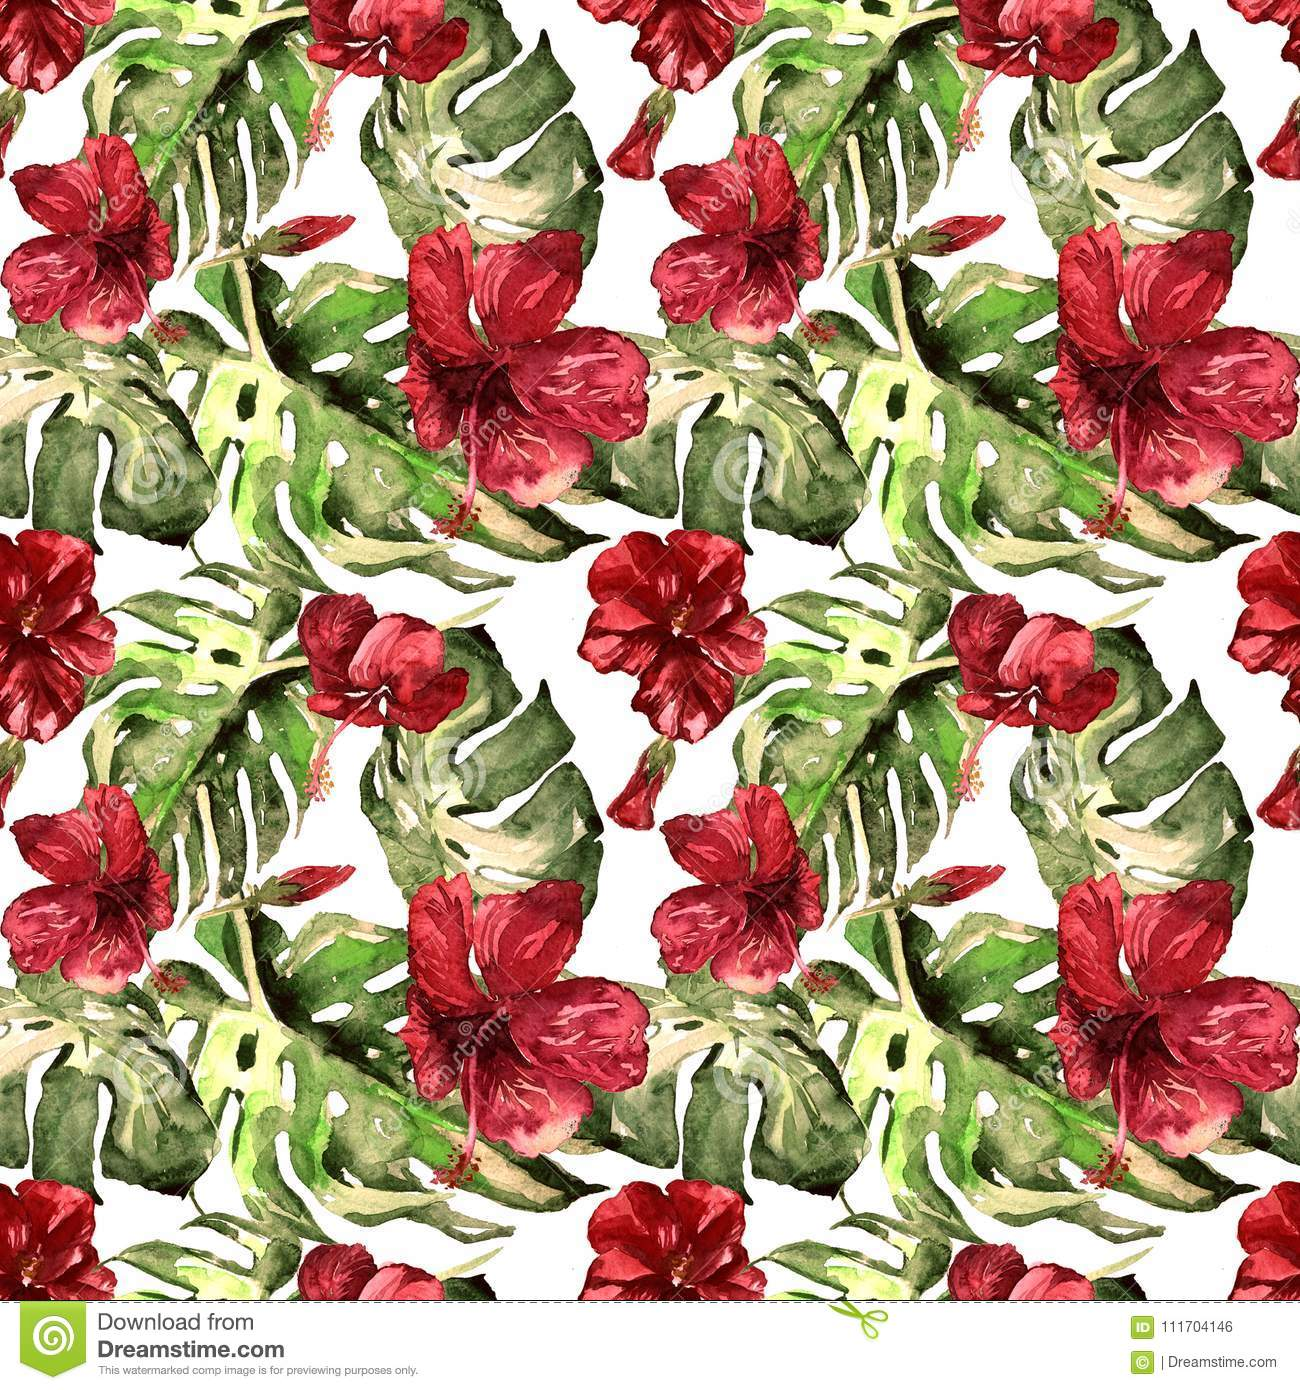 Exotic flowers watercolor seamless pattern stock photo image of exotic flowers hawaiian flowers watercolor seamless pattern hand painted illustration of tropical leaves and flowersntropic summer motif with hawaiian izmirmasajfo